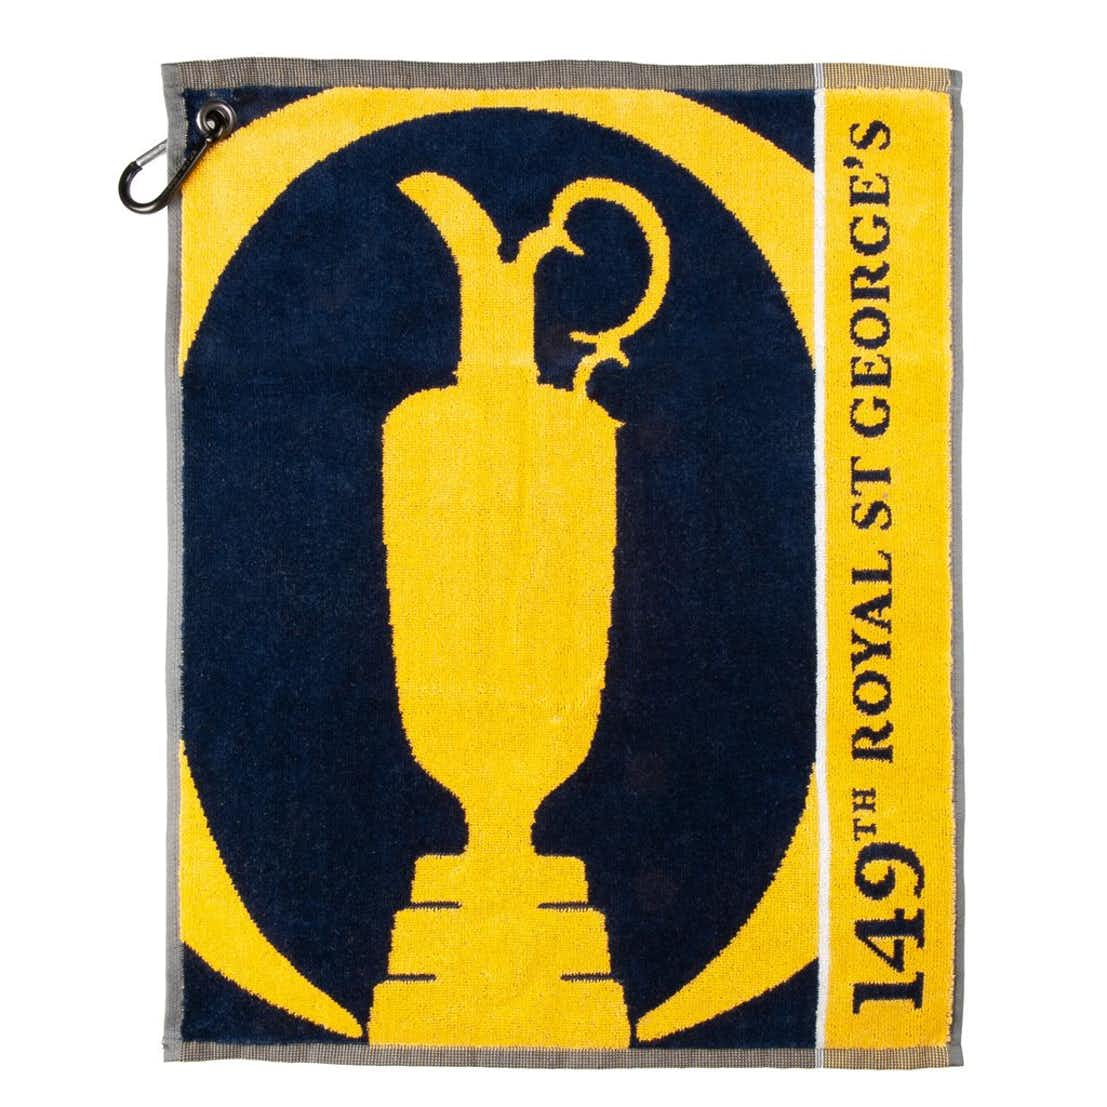 149th Royal St George's Large Symbol Woven Towel - Yellow